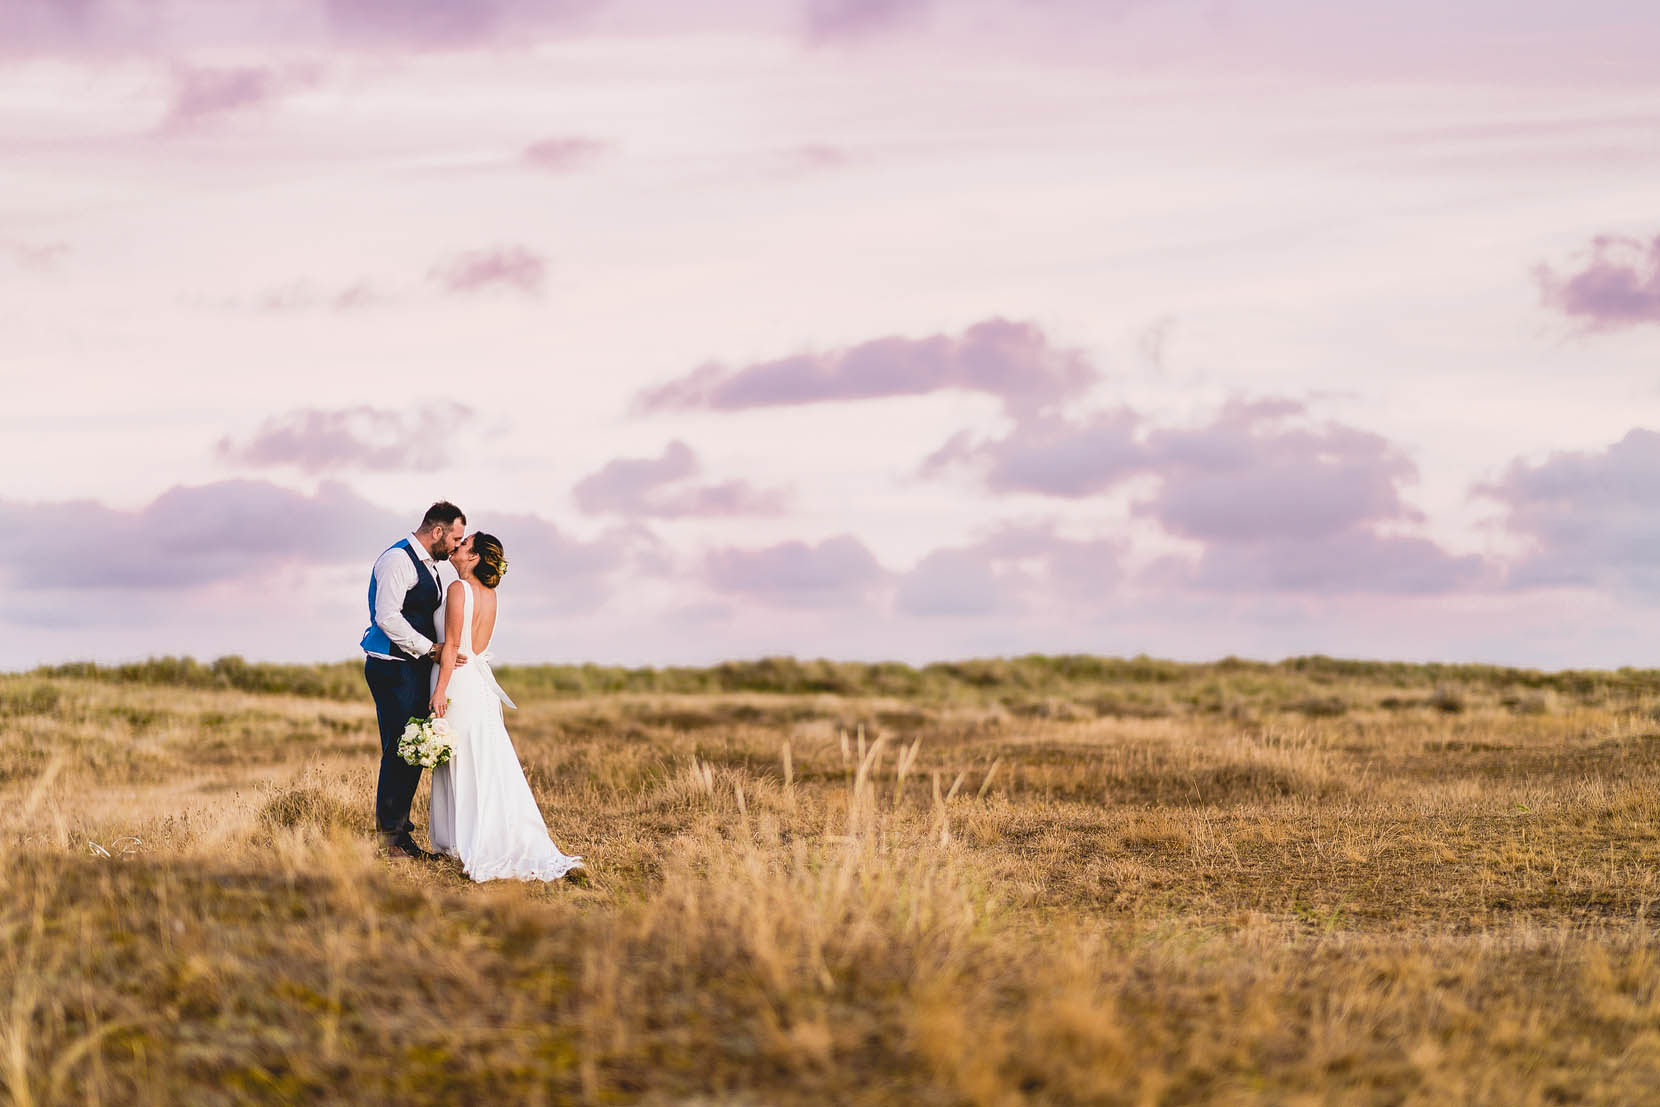 Great Yarmouth Wedding Photography, Katie & Rob on the beach having a snog in some golden evening light